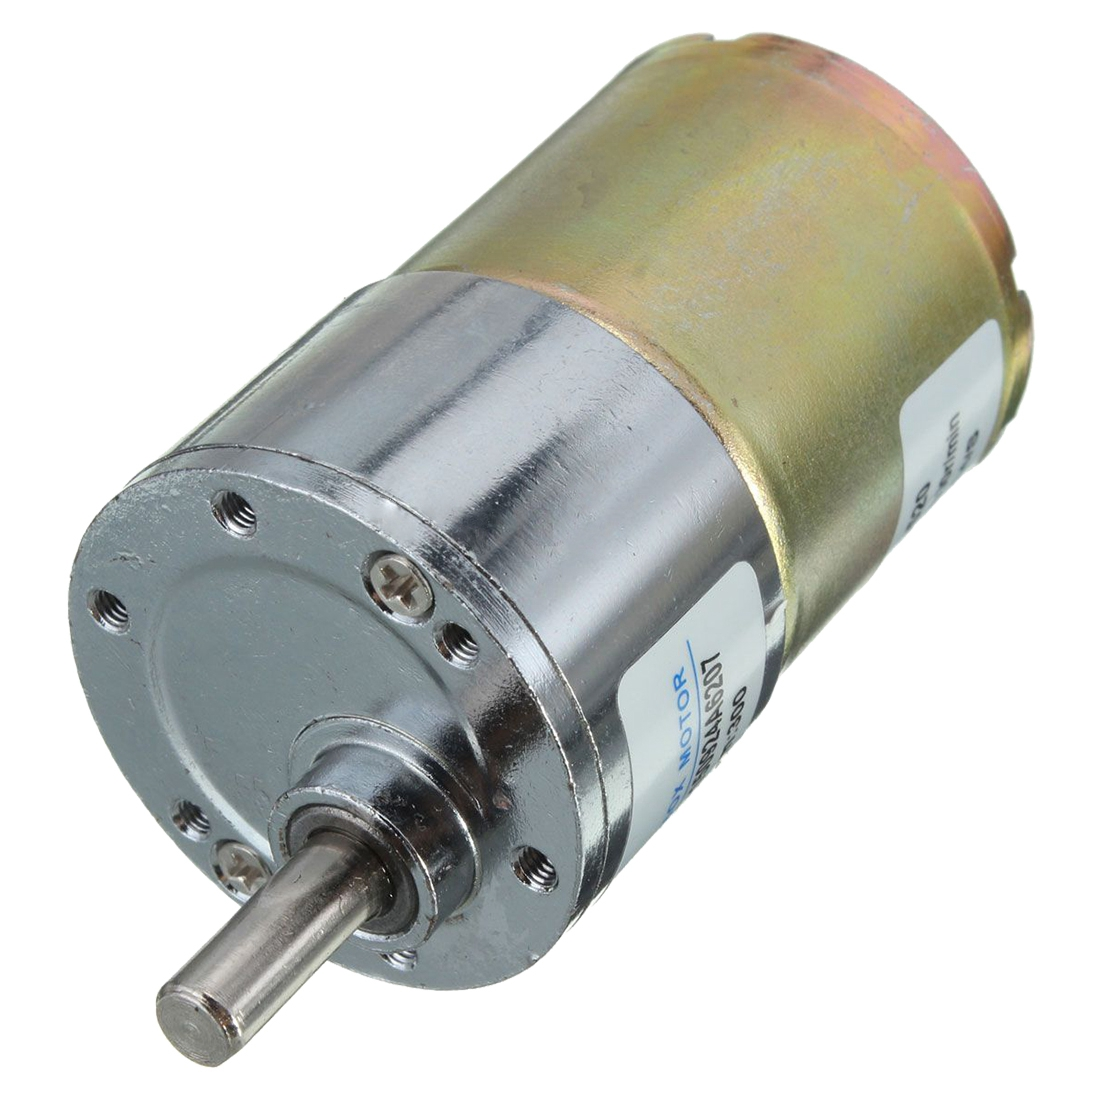 Zhengk 12vdc electric motor 300 rpm high torque gear motor for High torque high speed dc motor